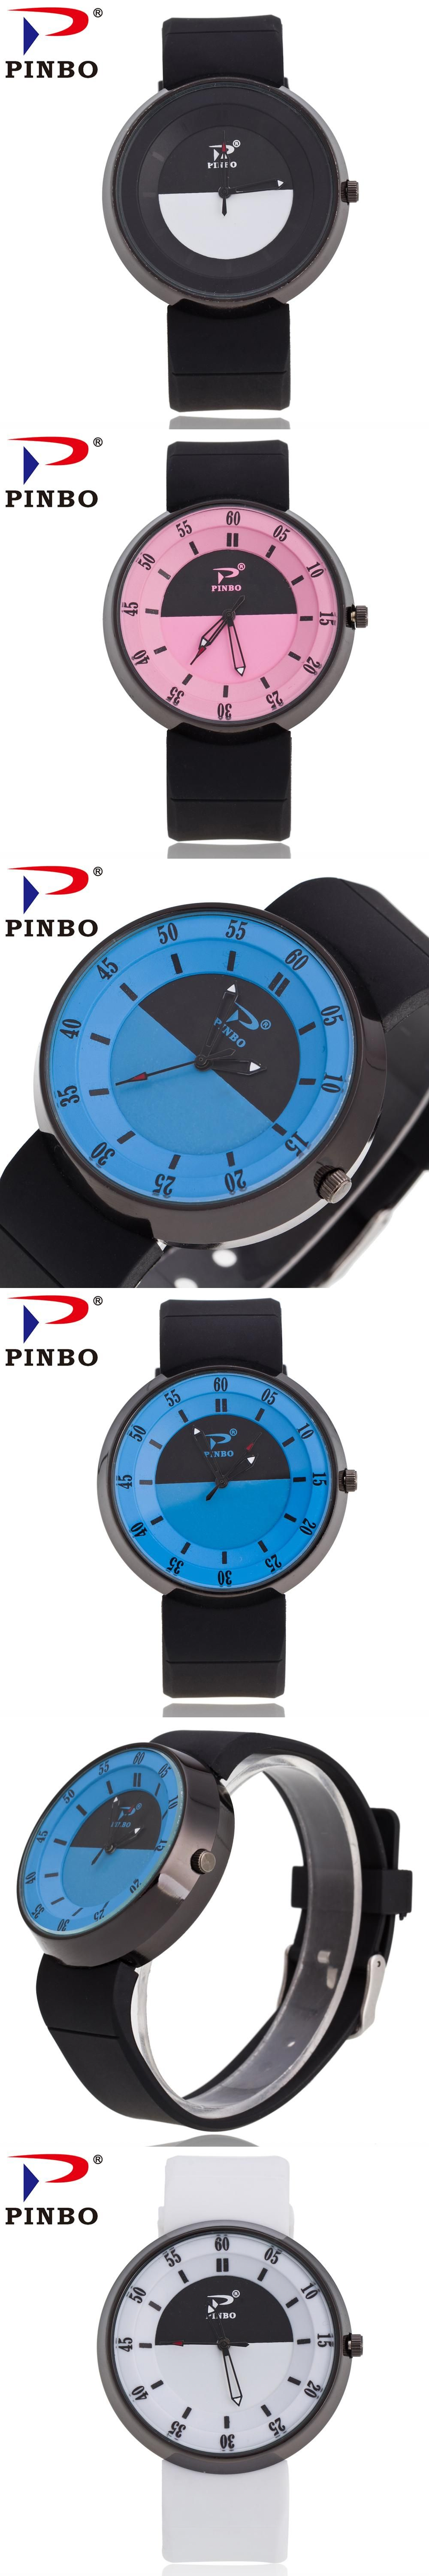 hull sp watches dial s mens automatic men blue silicone spinnaker watch